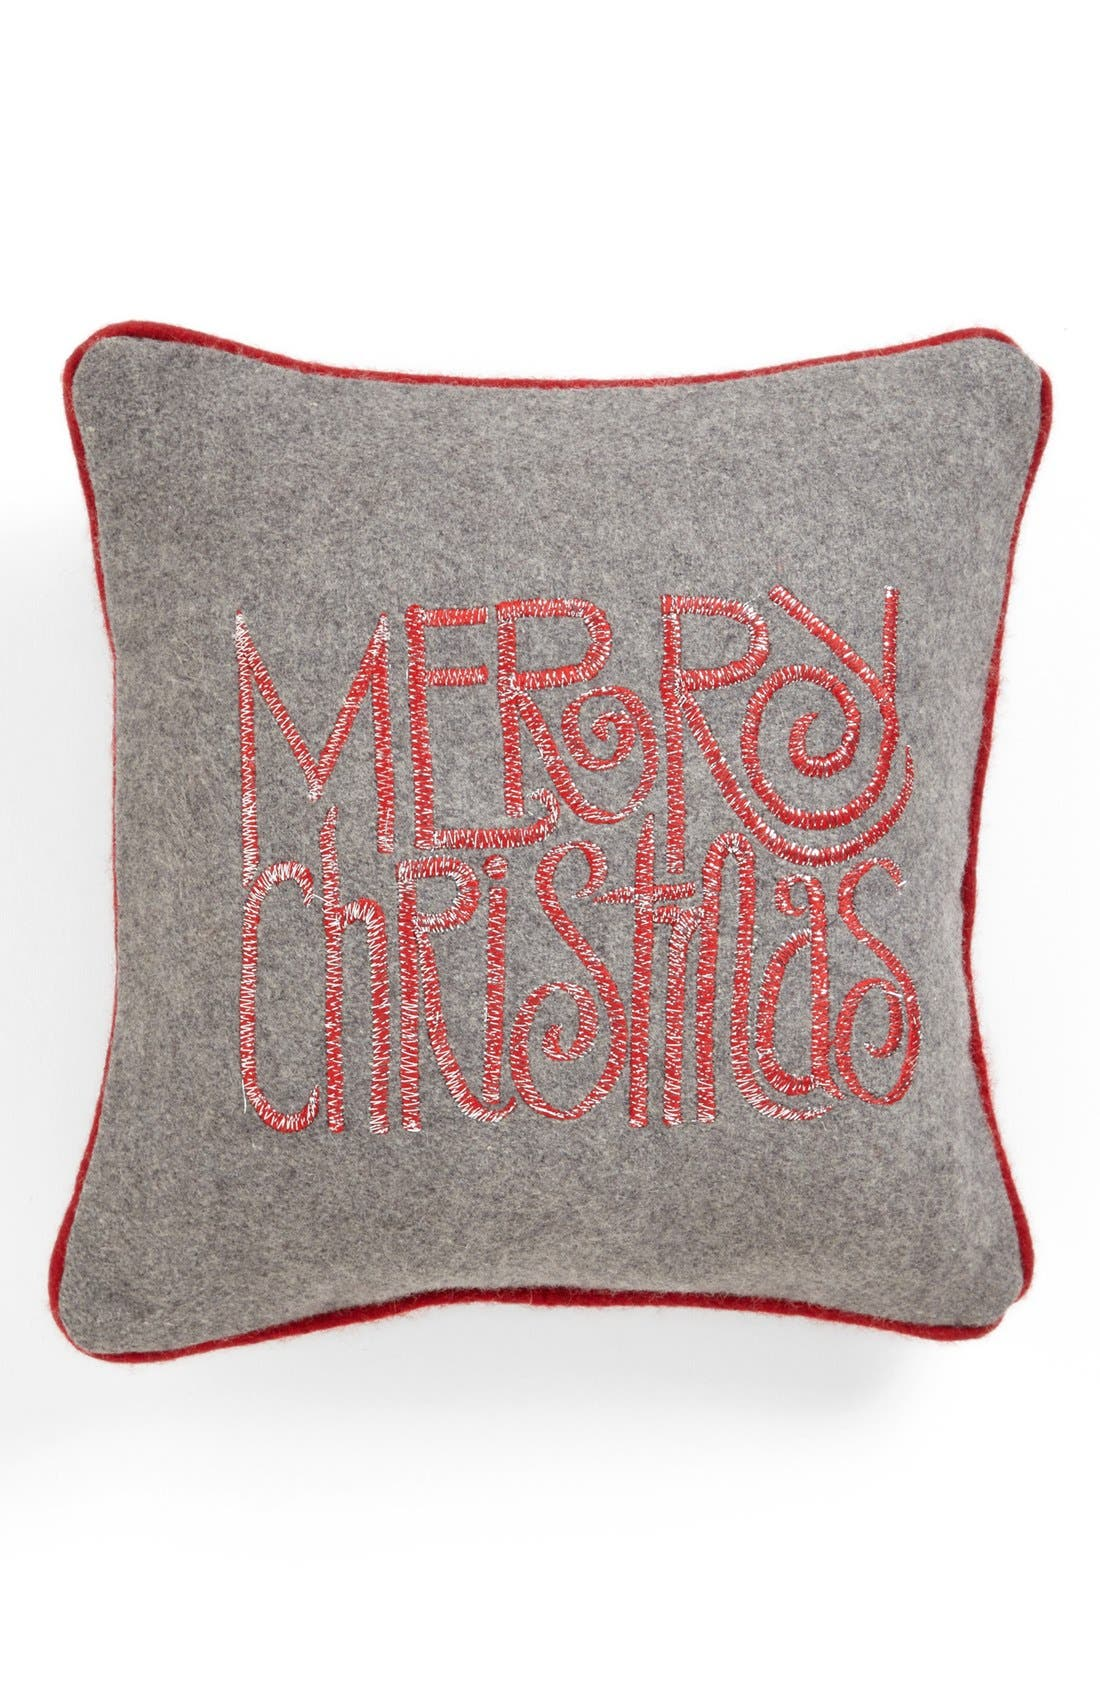 Alternate Image 1 Selected - Shiraleah 'Merry Christmas' Square Pillow